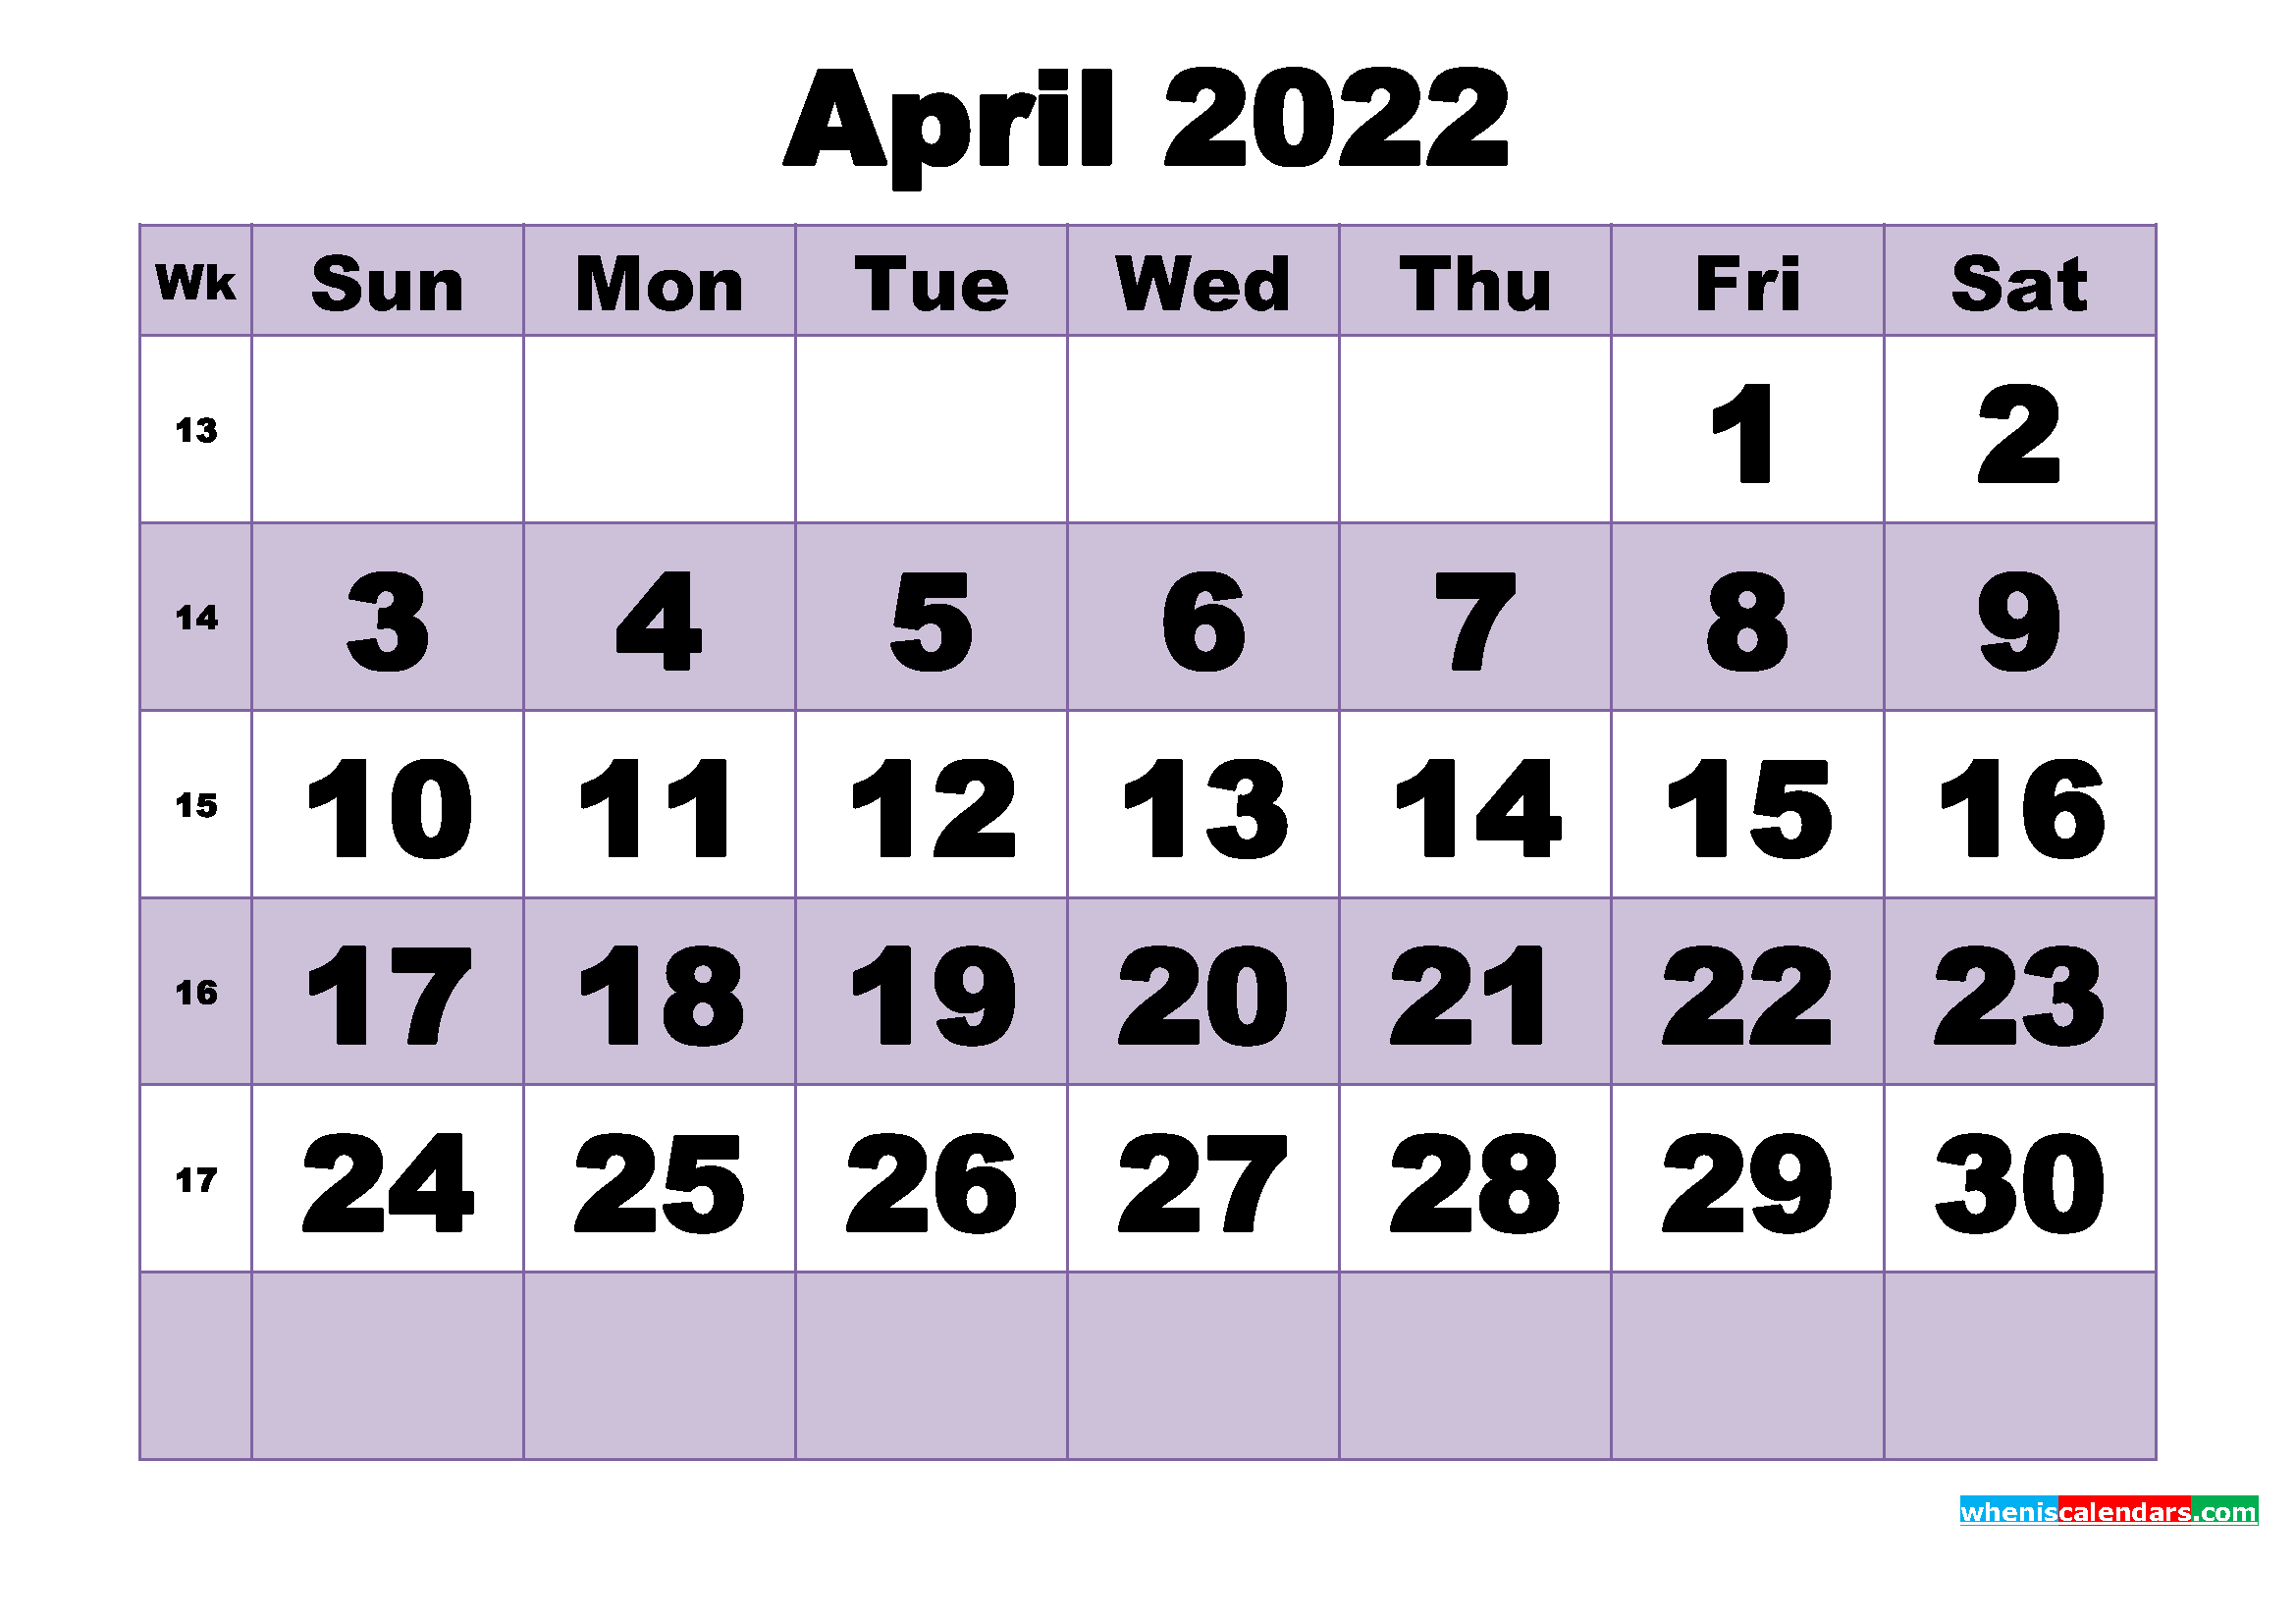 Free April 2022 Printable Monthly Calendar Template - Free intended for Printable April 2022 Calendar